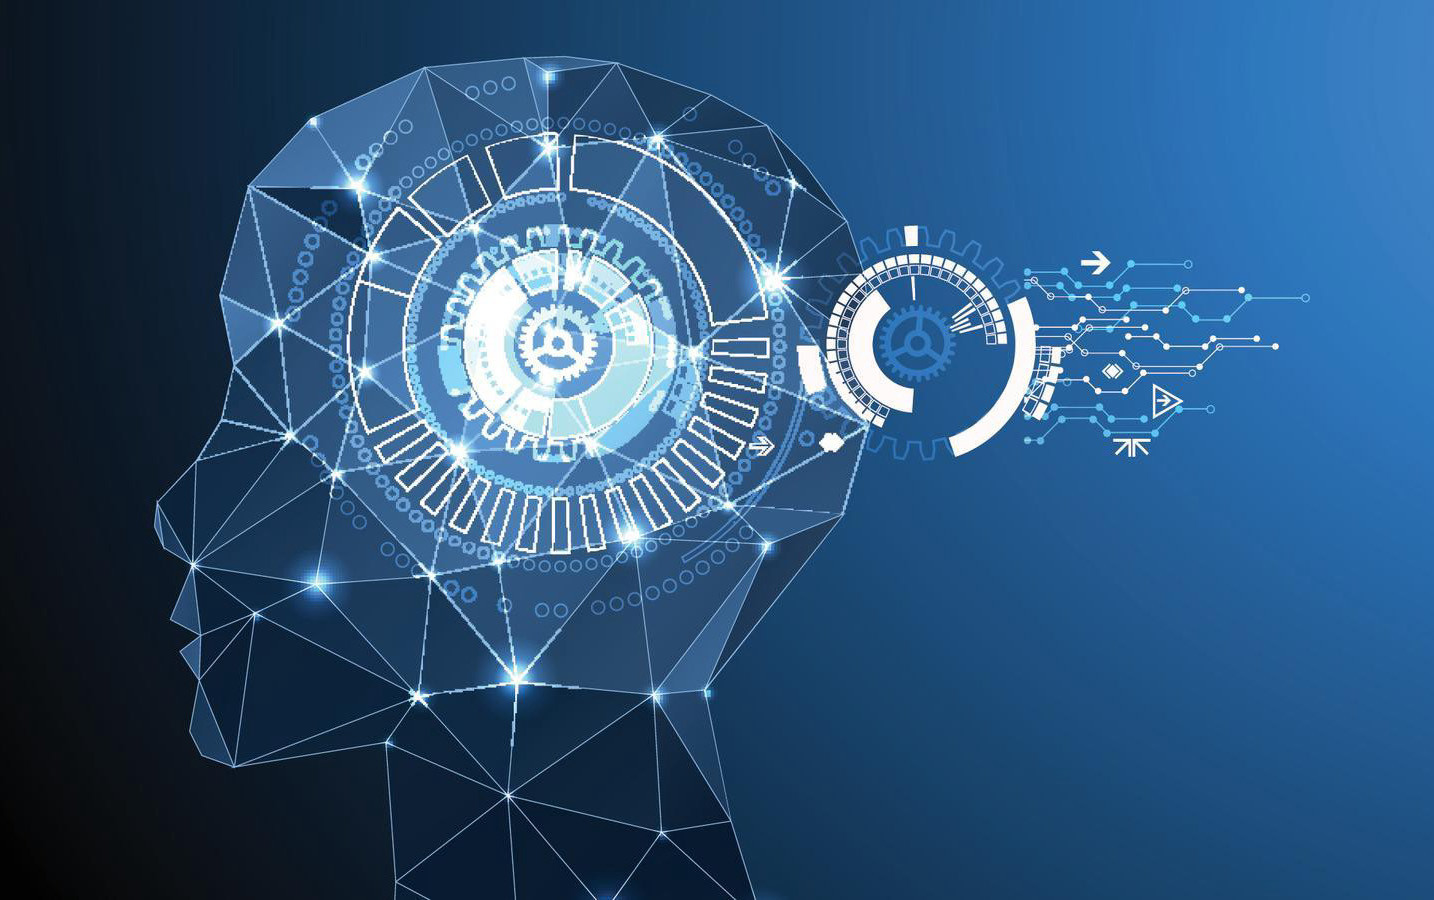 the modern developments in the field of artificial intelligence Artificial intelligence (ai) is not a new concept the modern field of ai came into existence in 1956, but it took decades of work to make significant progress toward developing an ai system and.